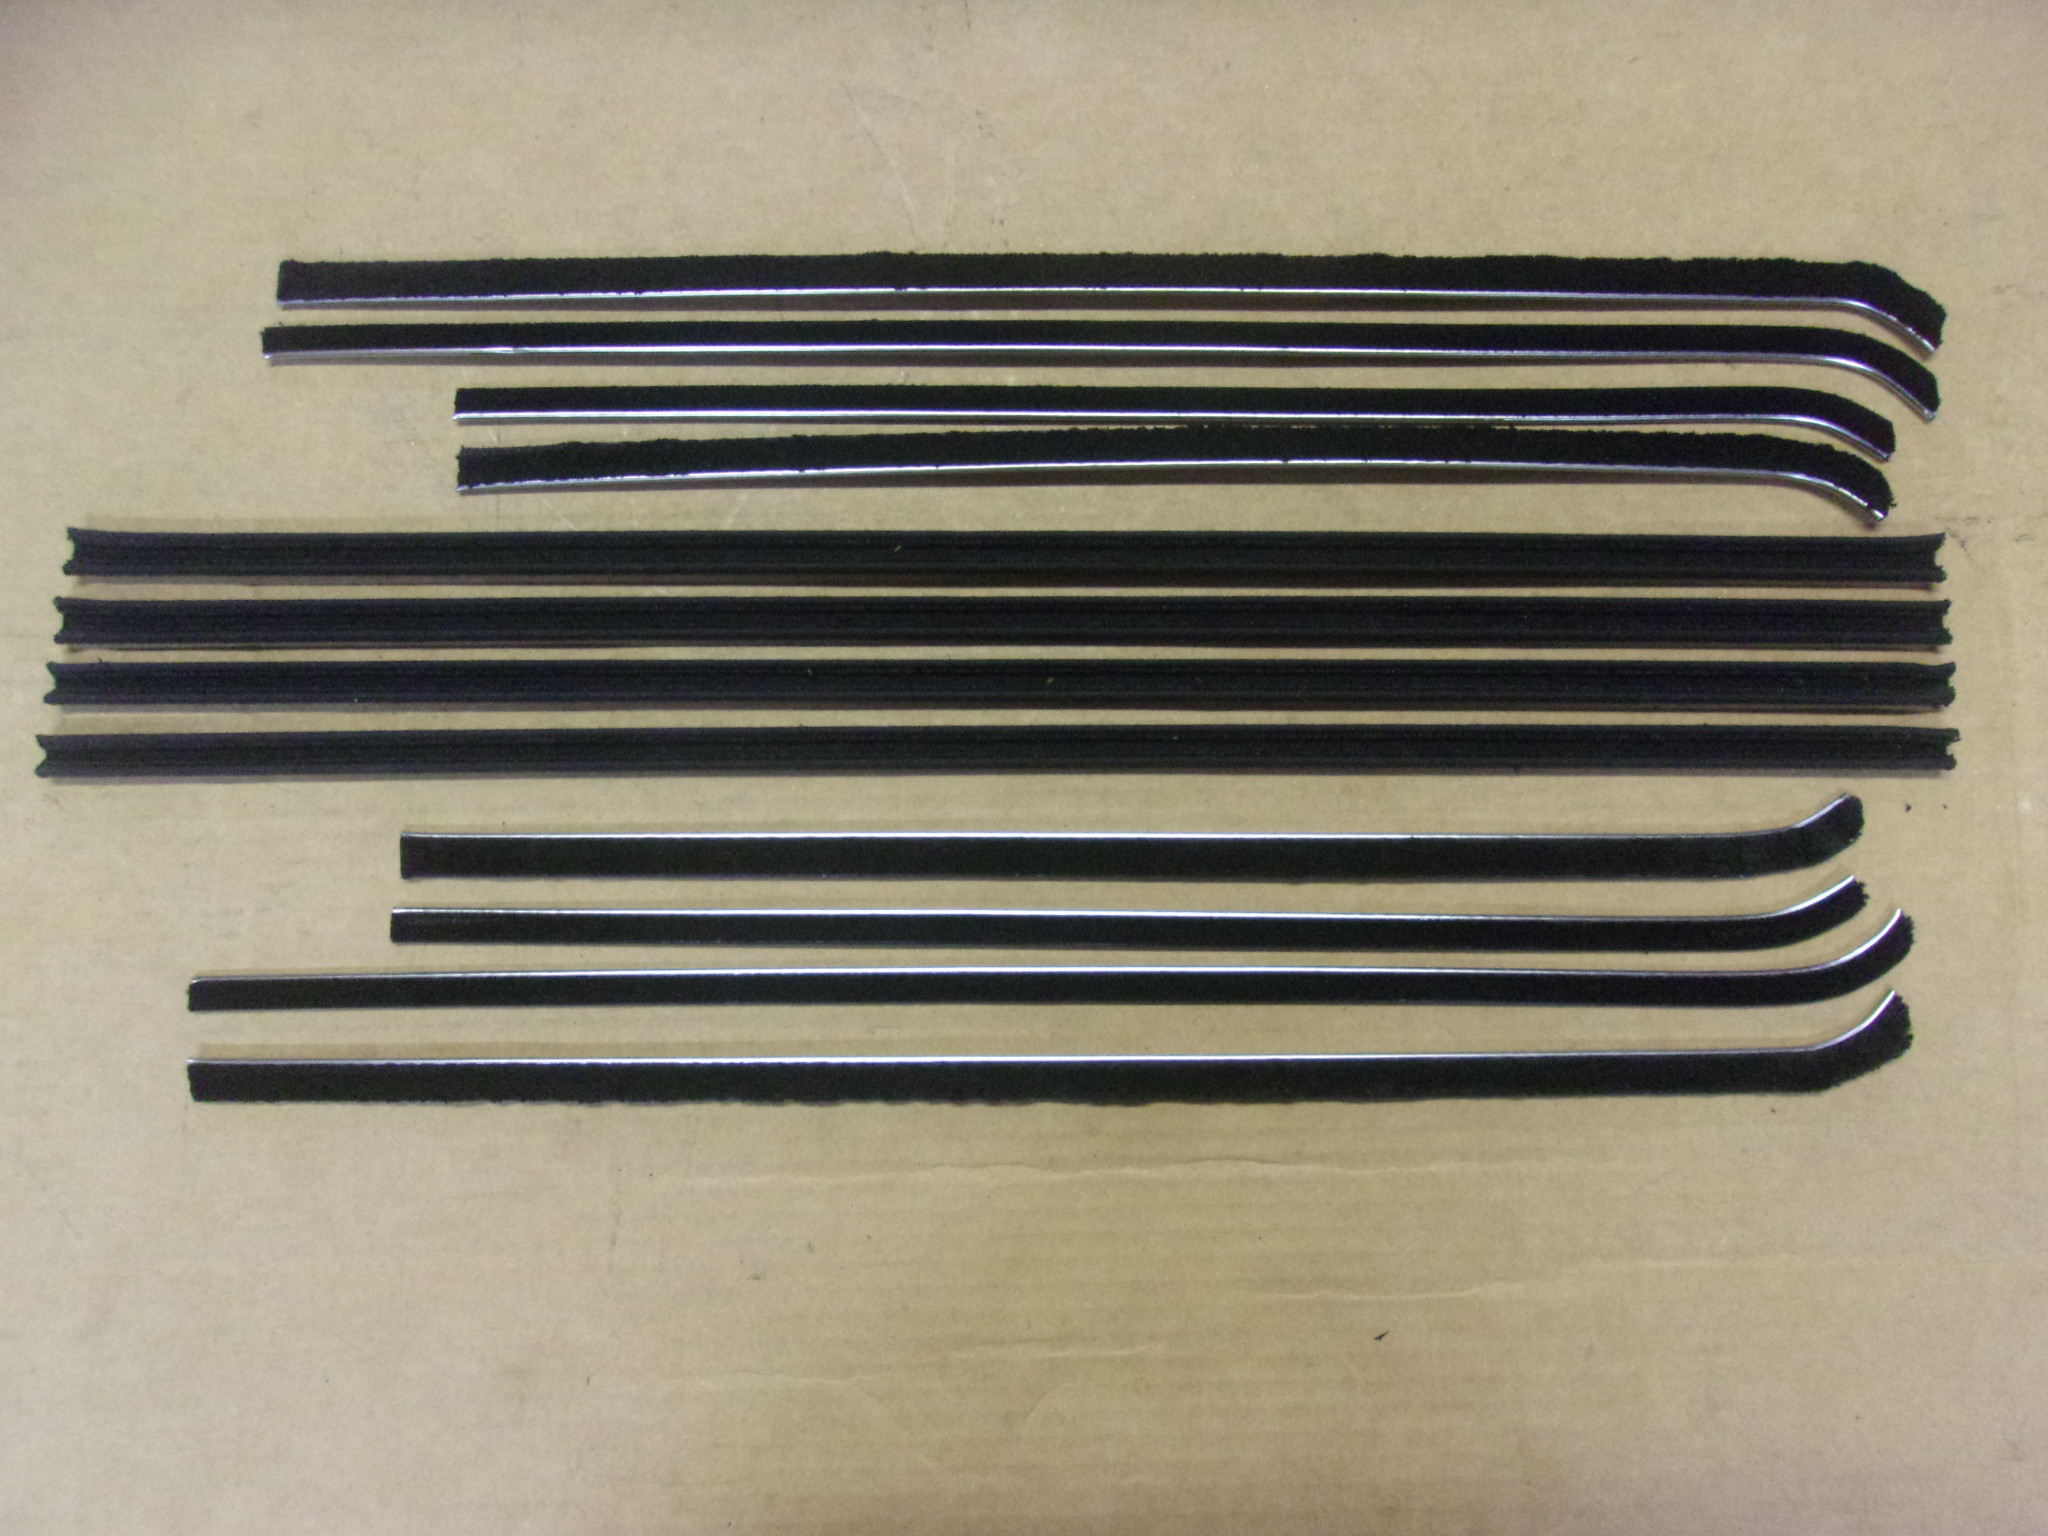 55-56 DESOTO/CHRYSLER 4 DOOR SEDAN BELT CATWHISKERS